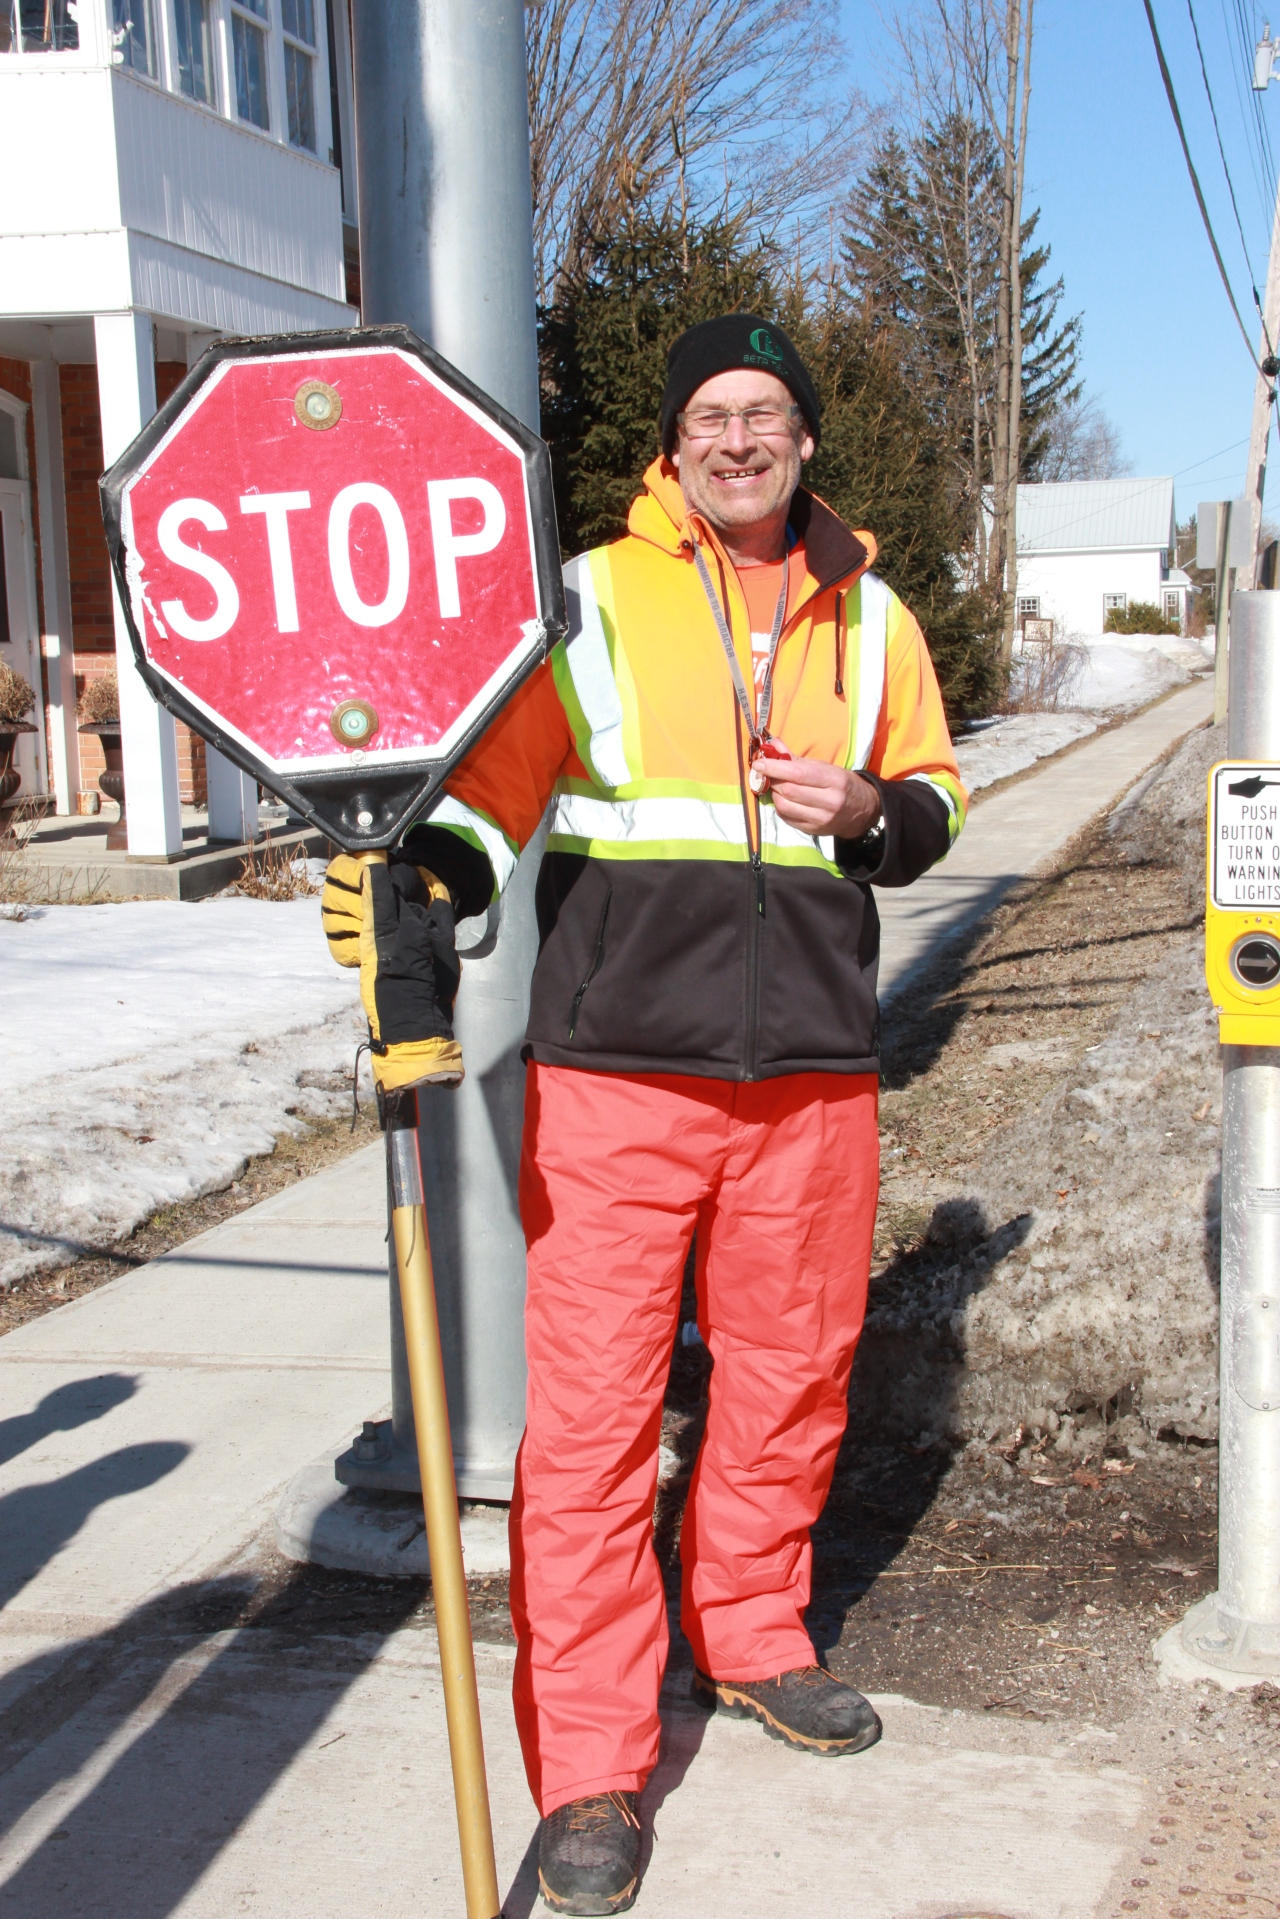 My Life as a School Crossing Guard